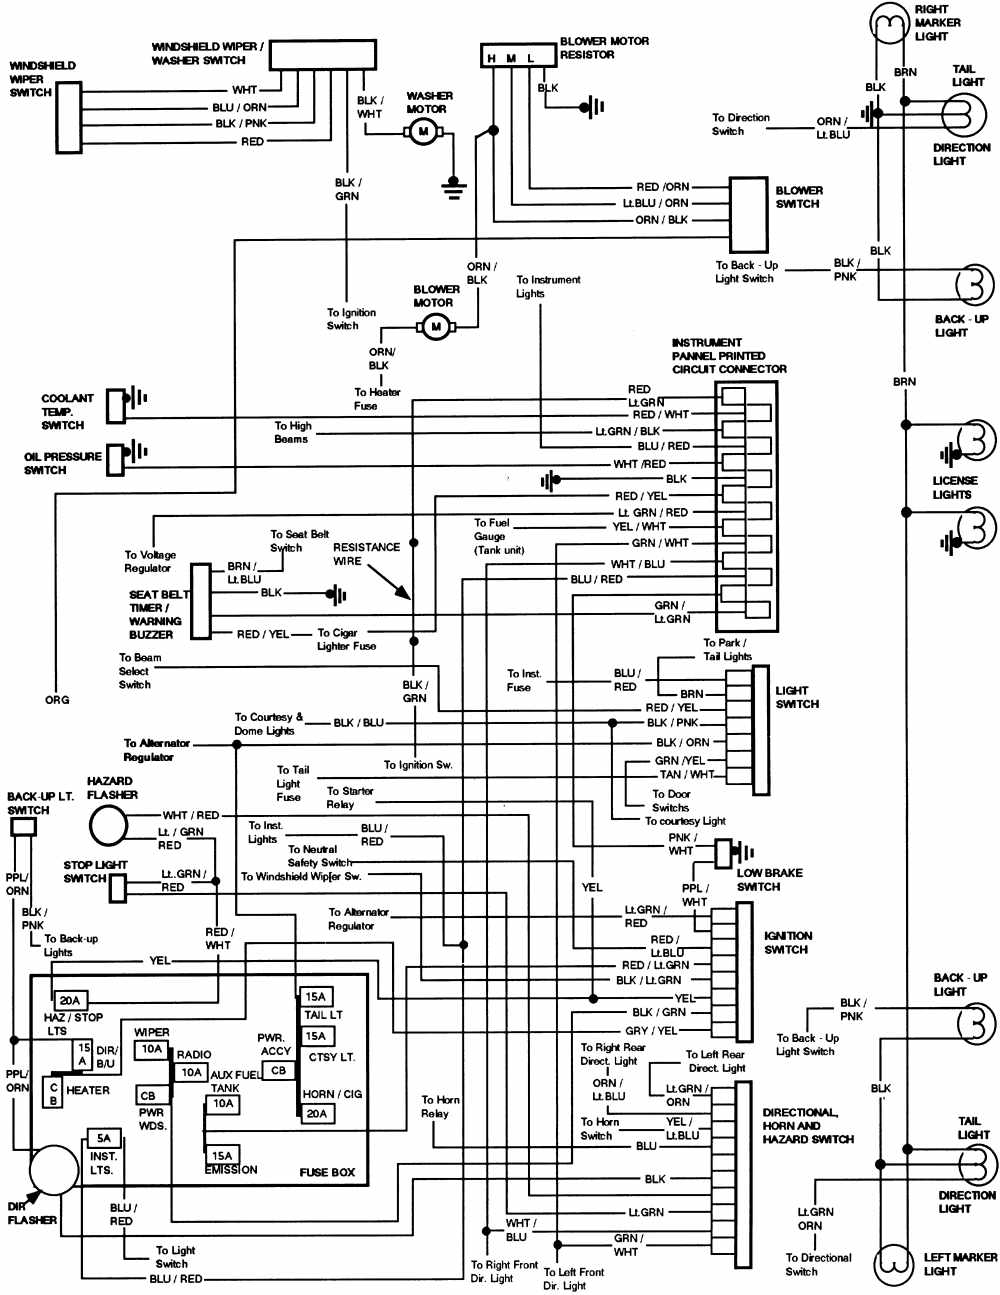 1989 ford f 250 wiring diagram ford circuit wiring